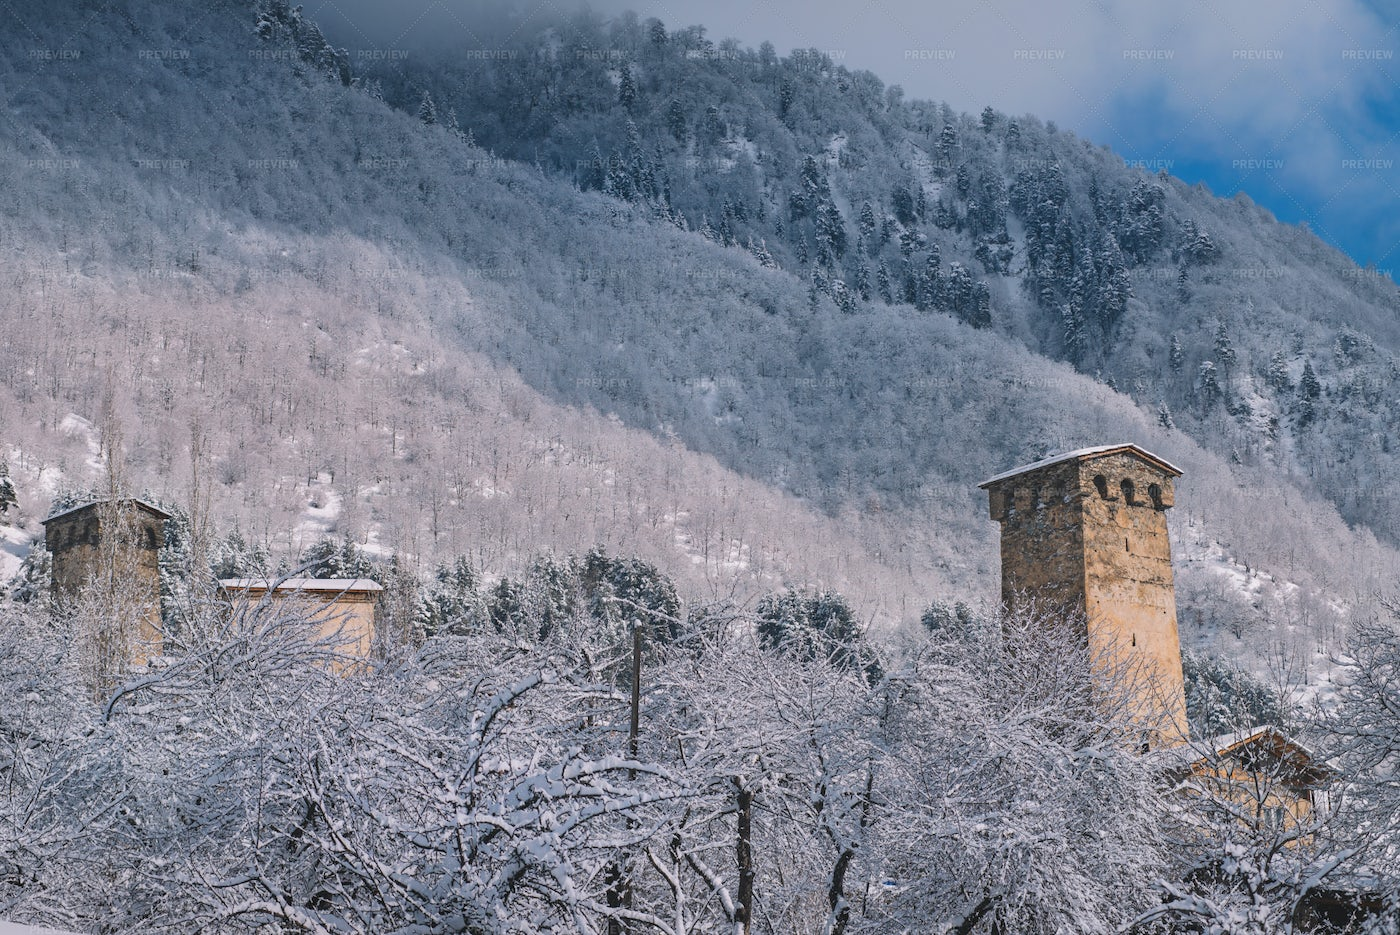 Old Mountain Village In The Winter: Stock Photos